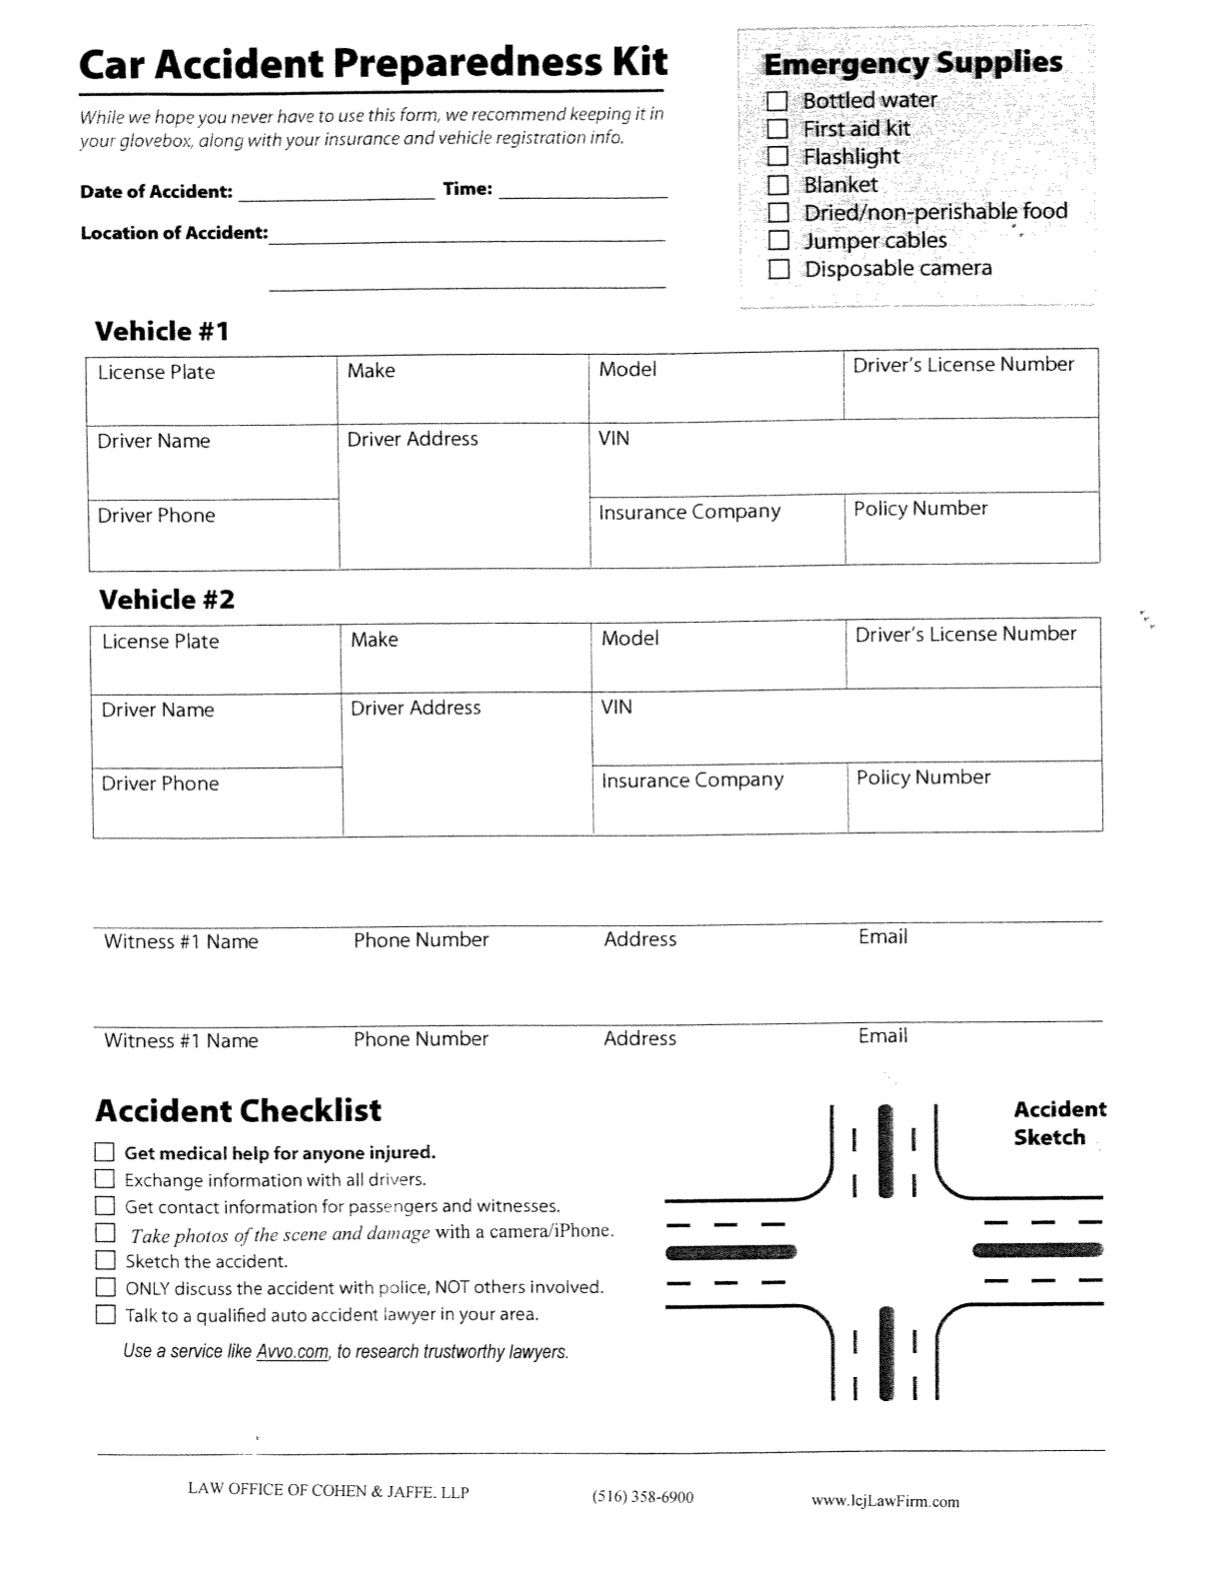 caraccidentchecklist to keep in your glove box. It helps